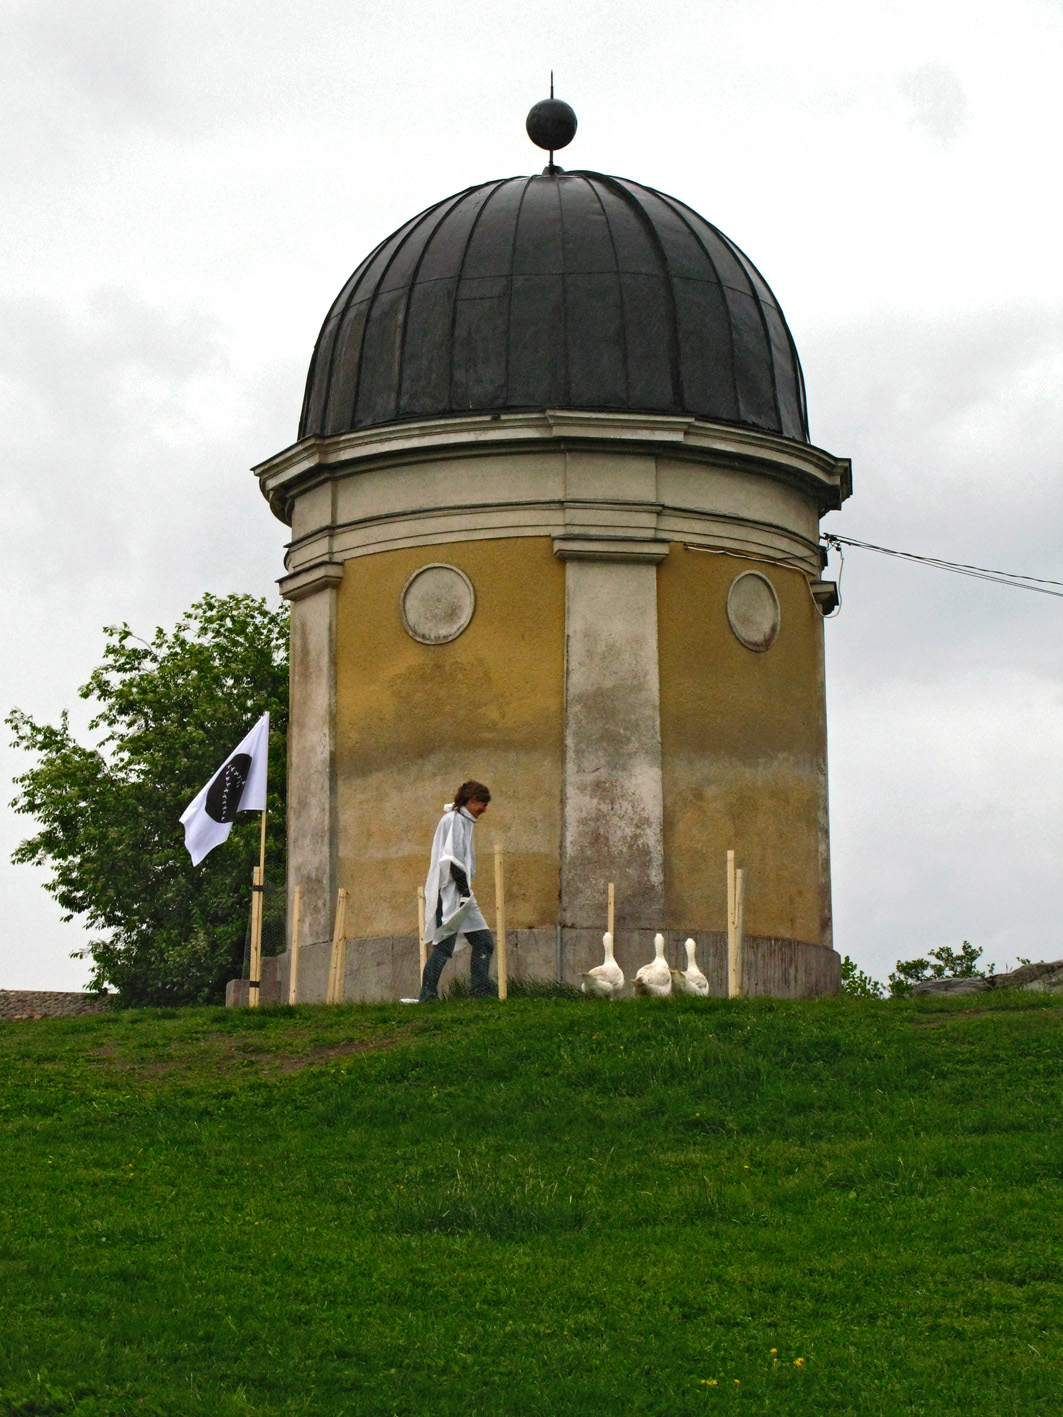 Agnes and the Moon Geese on their stop in Helsinki, URSA observatory